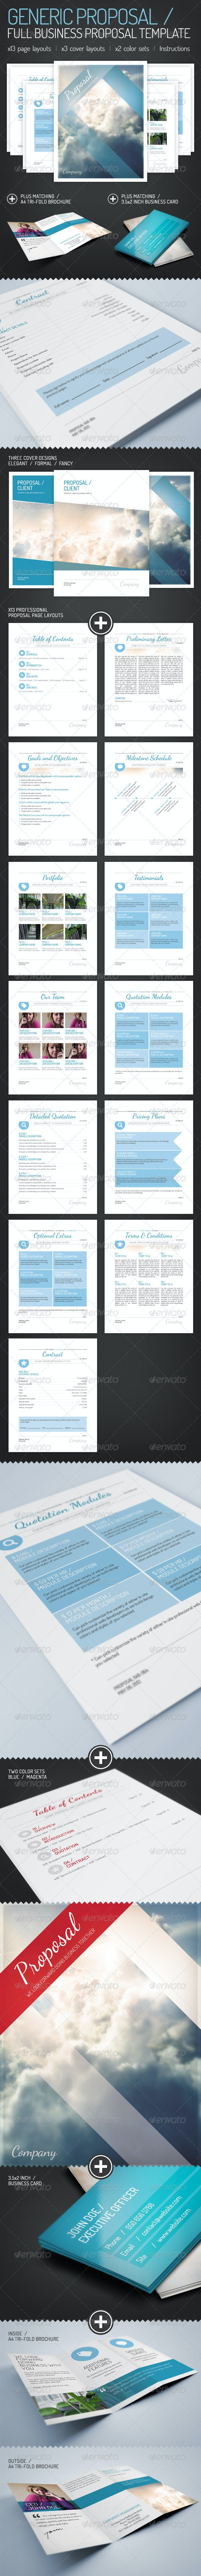 Generic Proposal - Full Business Proposal Template - Proposals & Invoices Stationery